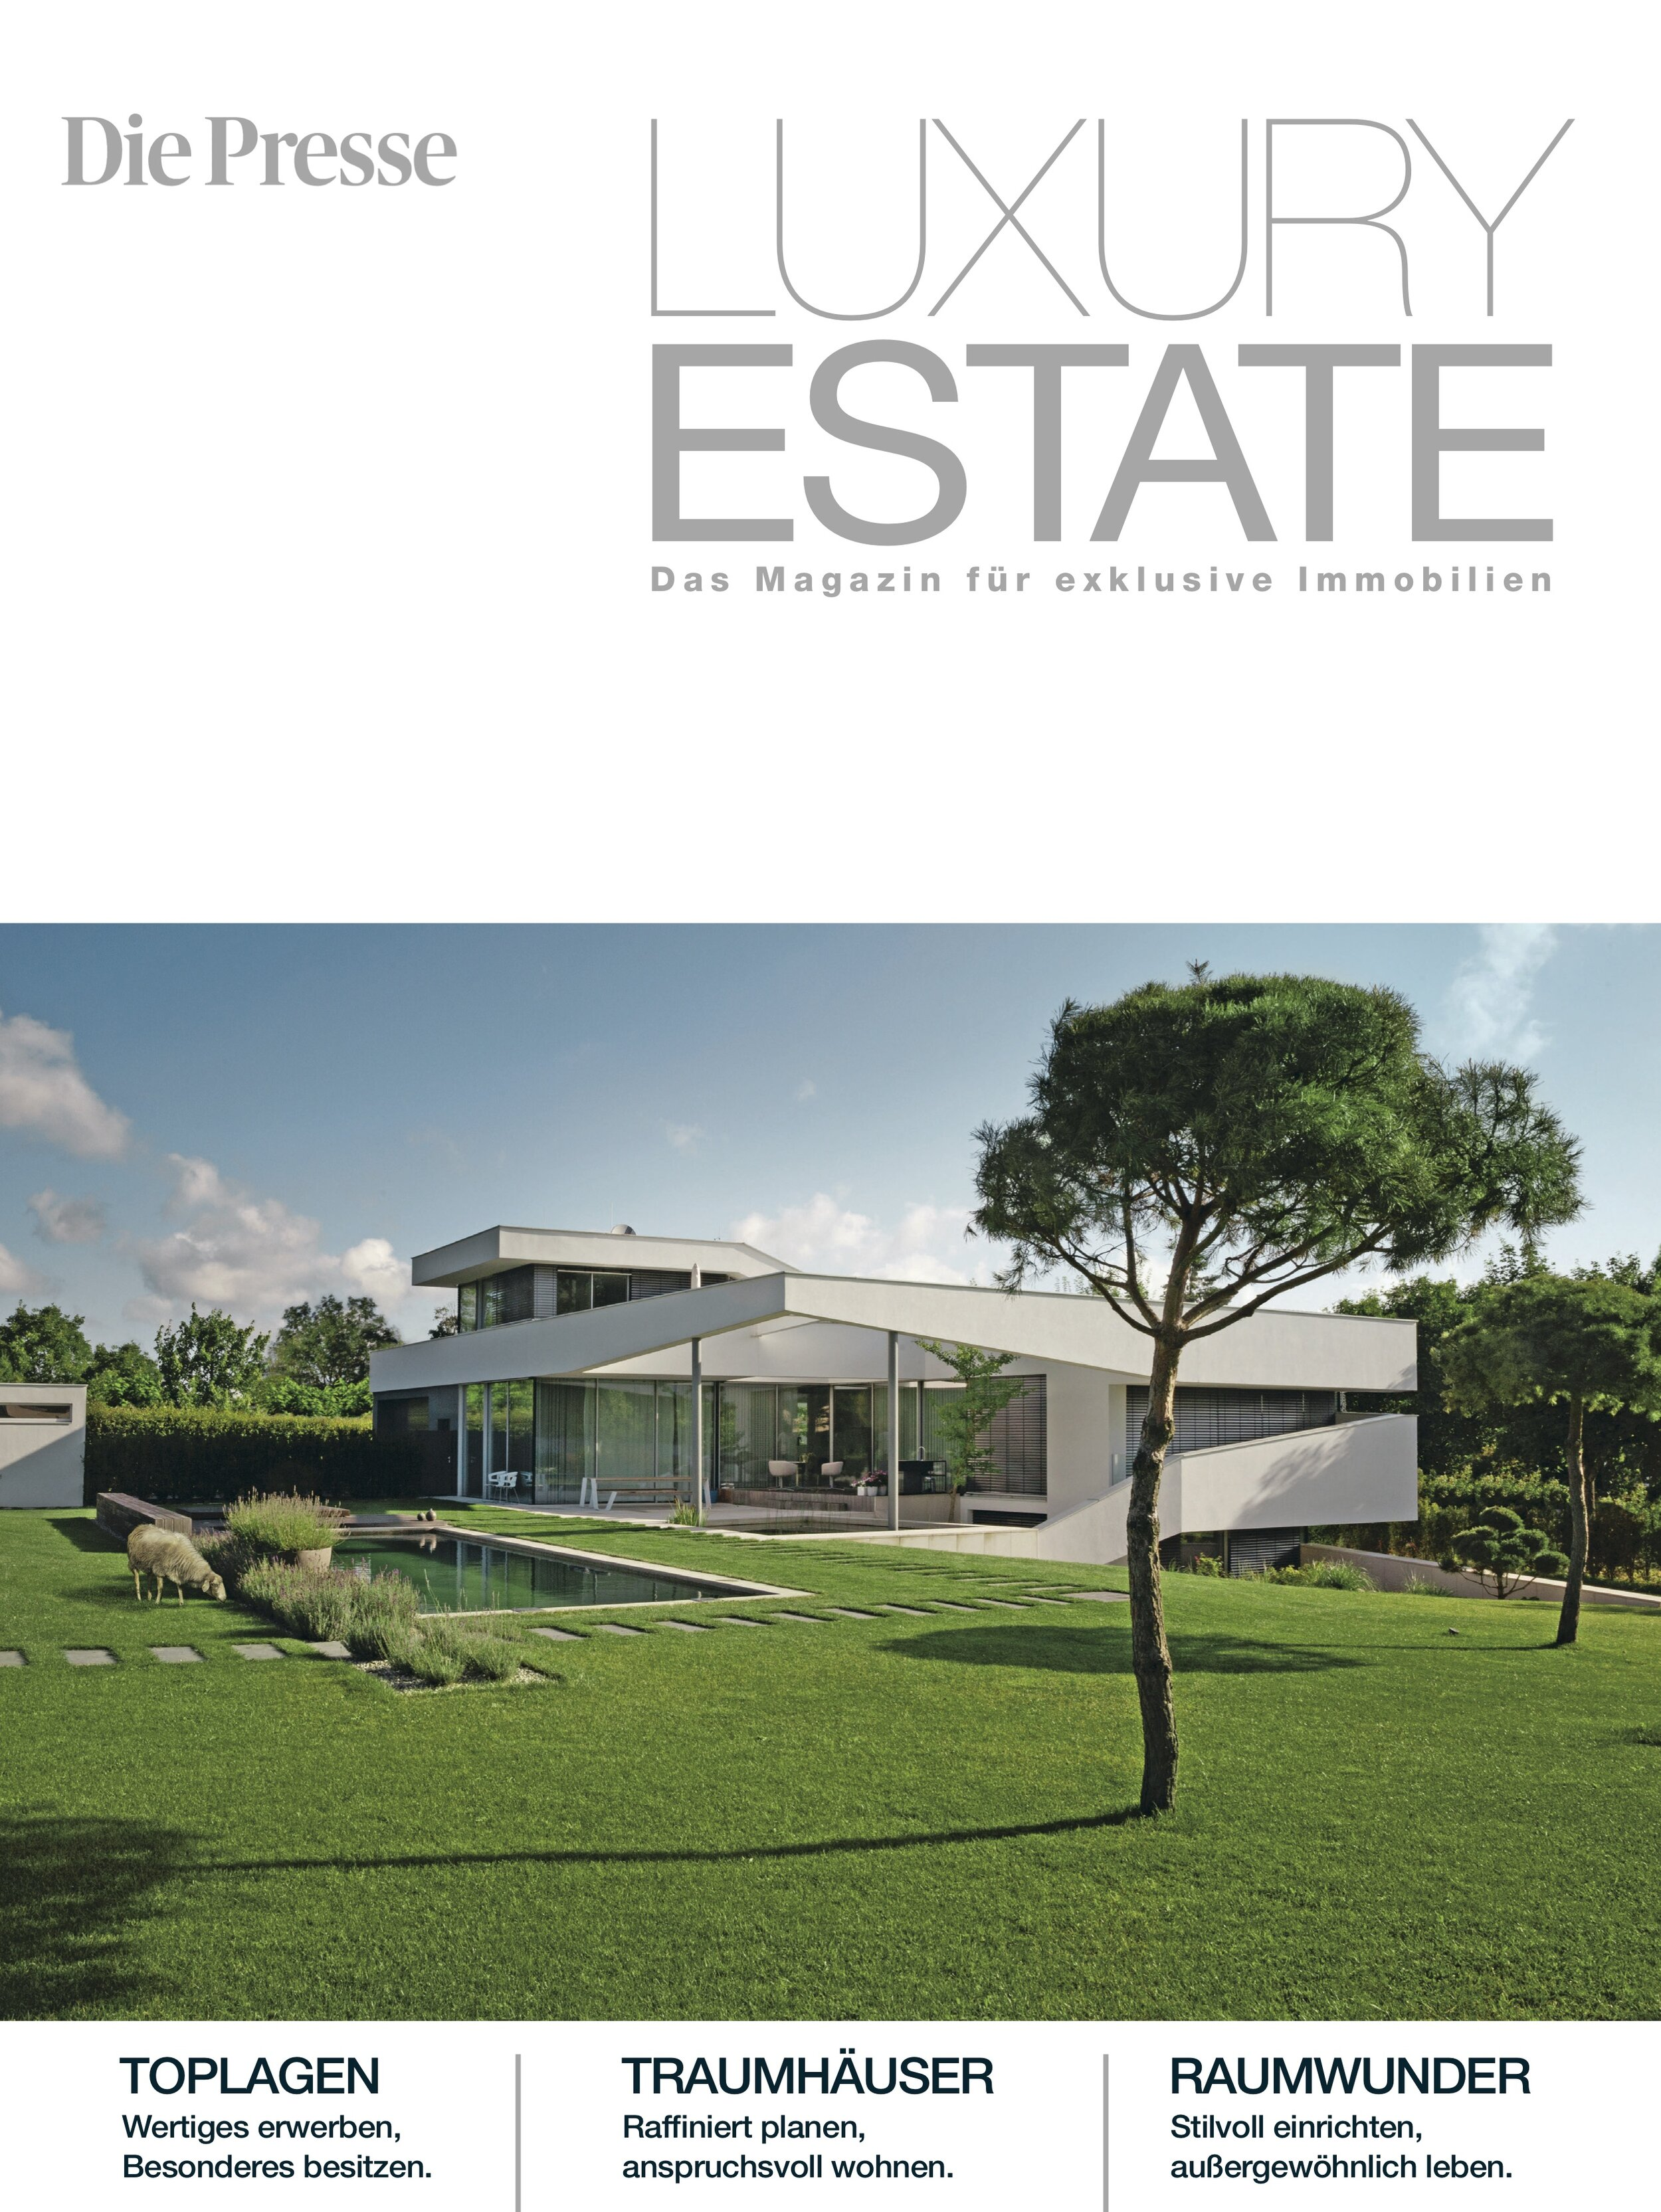 Strictly-pretty - Coverstory about the garden design of Resicence Kirchtag in print magazine Die Presse